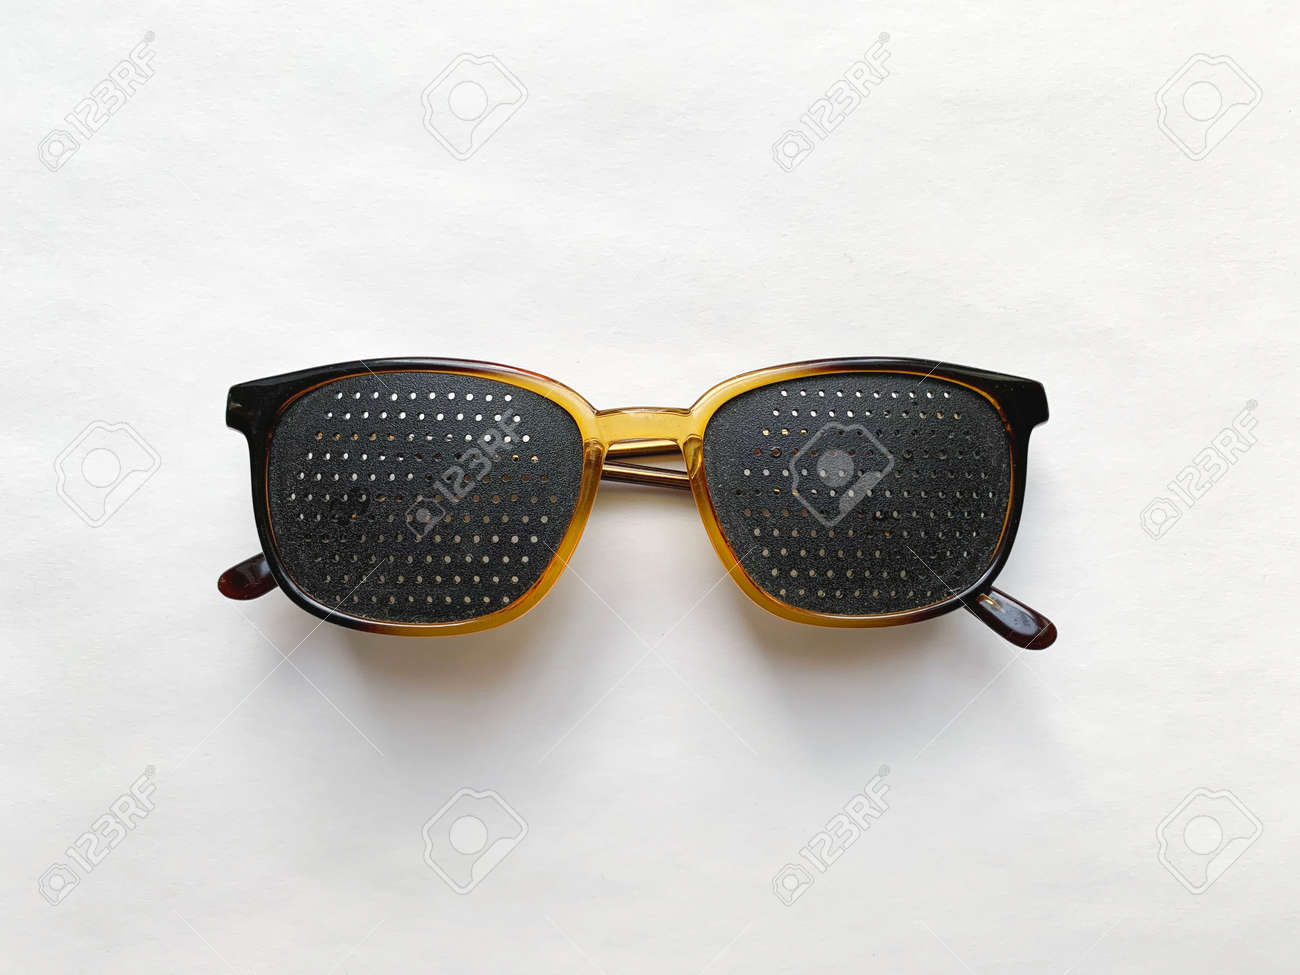 Special perforated glasses for vision correction on a white background. - 169603121